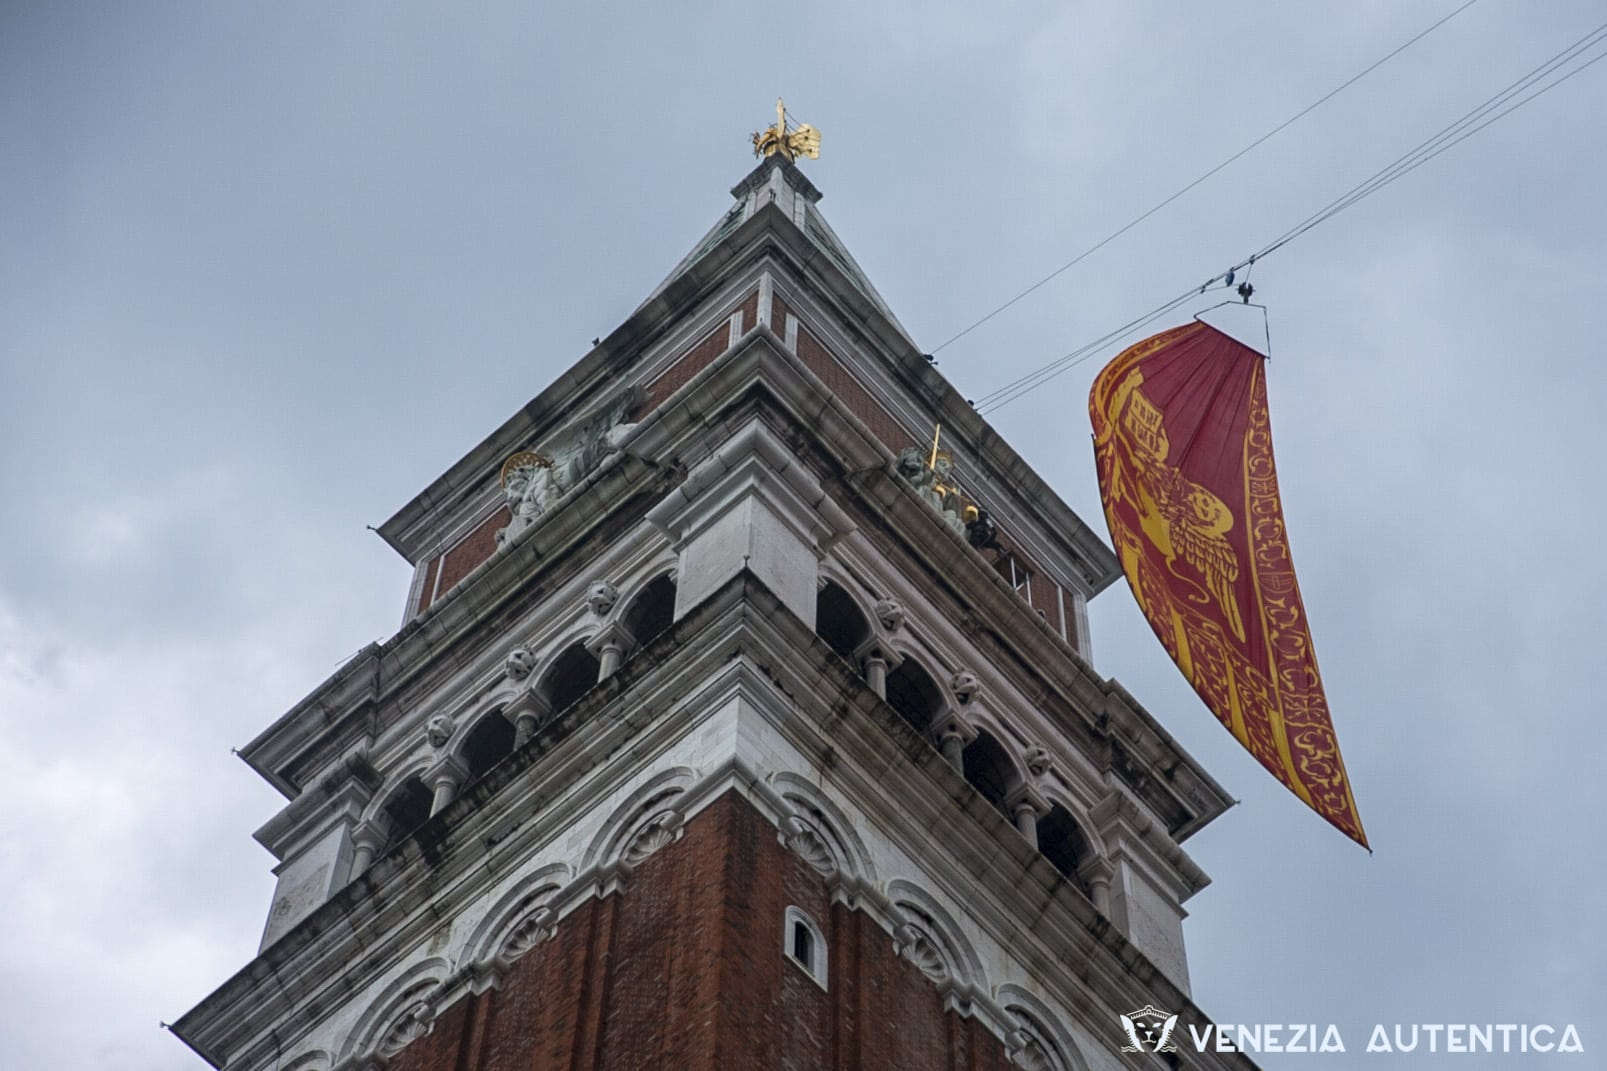 A big Venice flag, characterised by a winged lion, is lifted on top of the Sain Mark's Bell Tower.